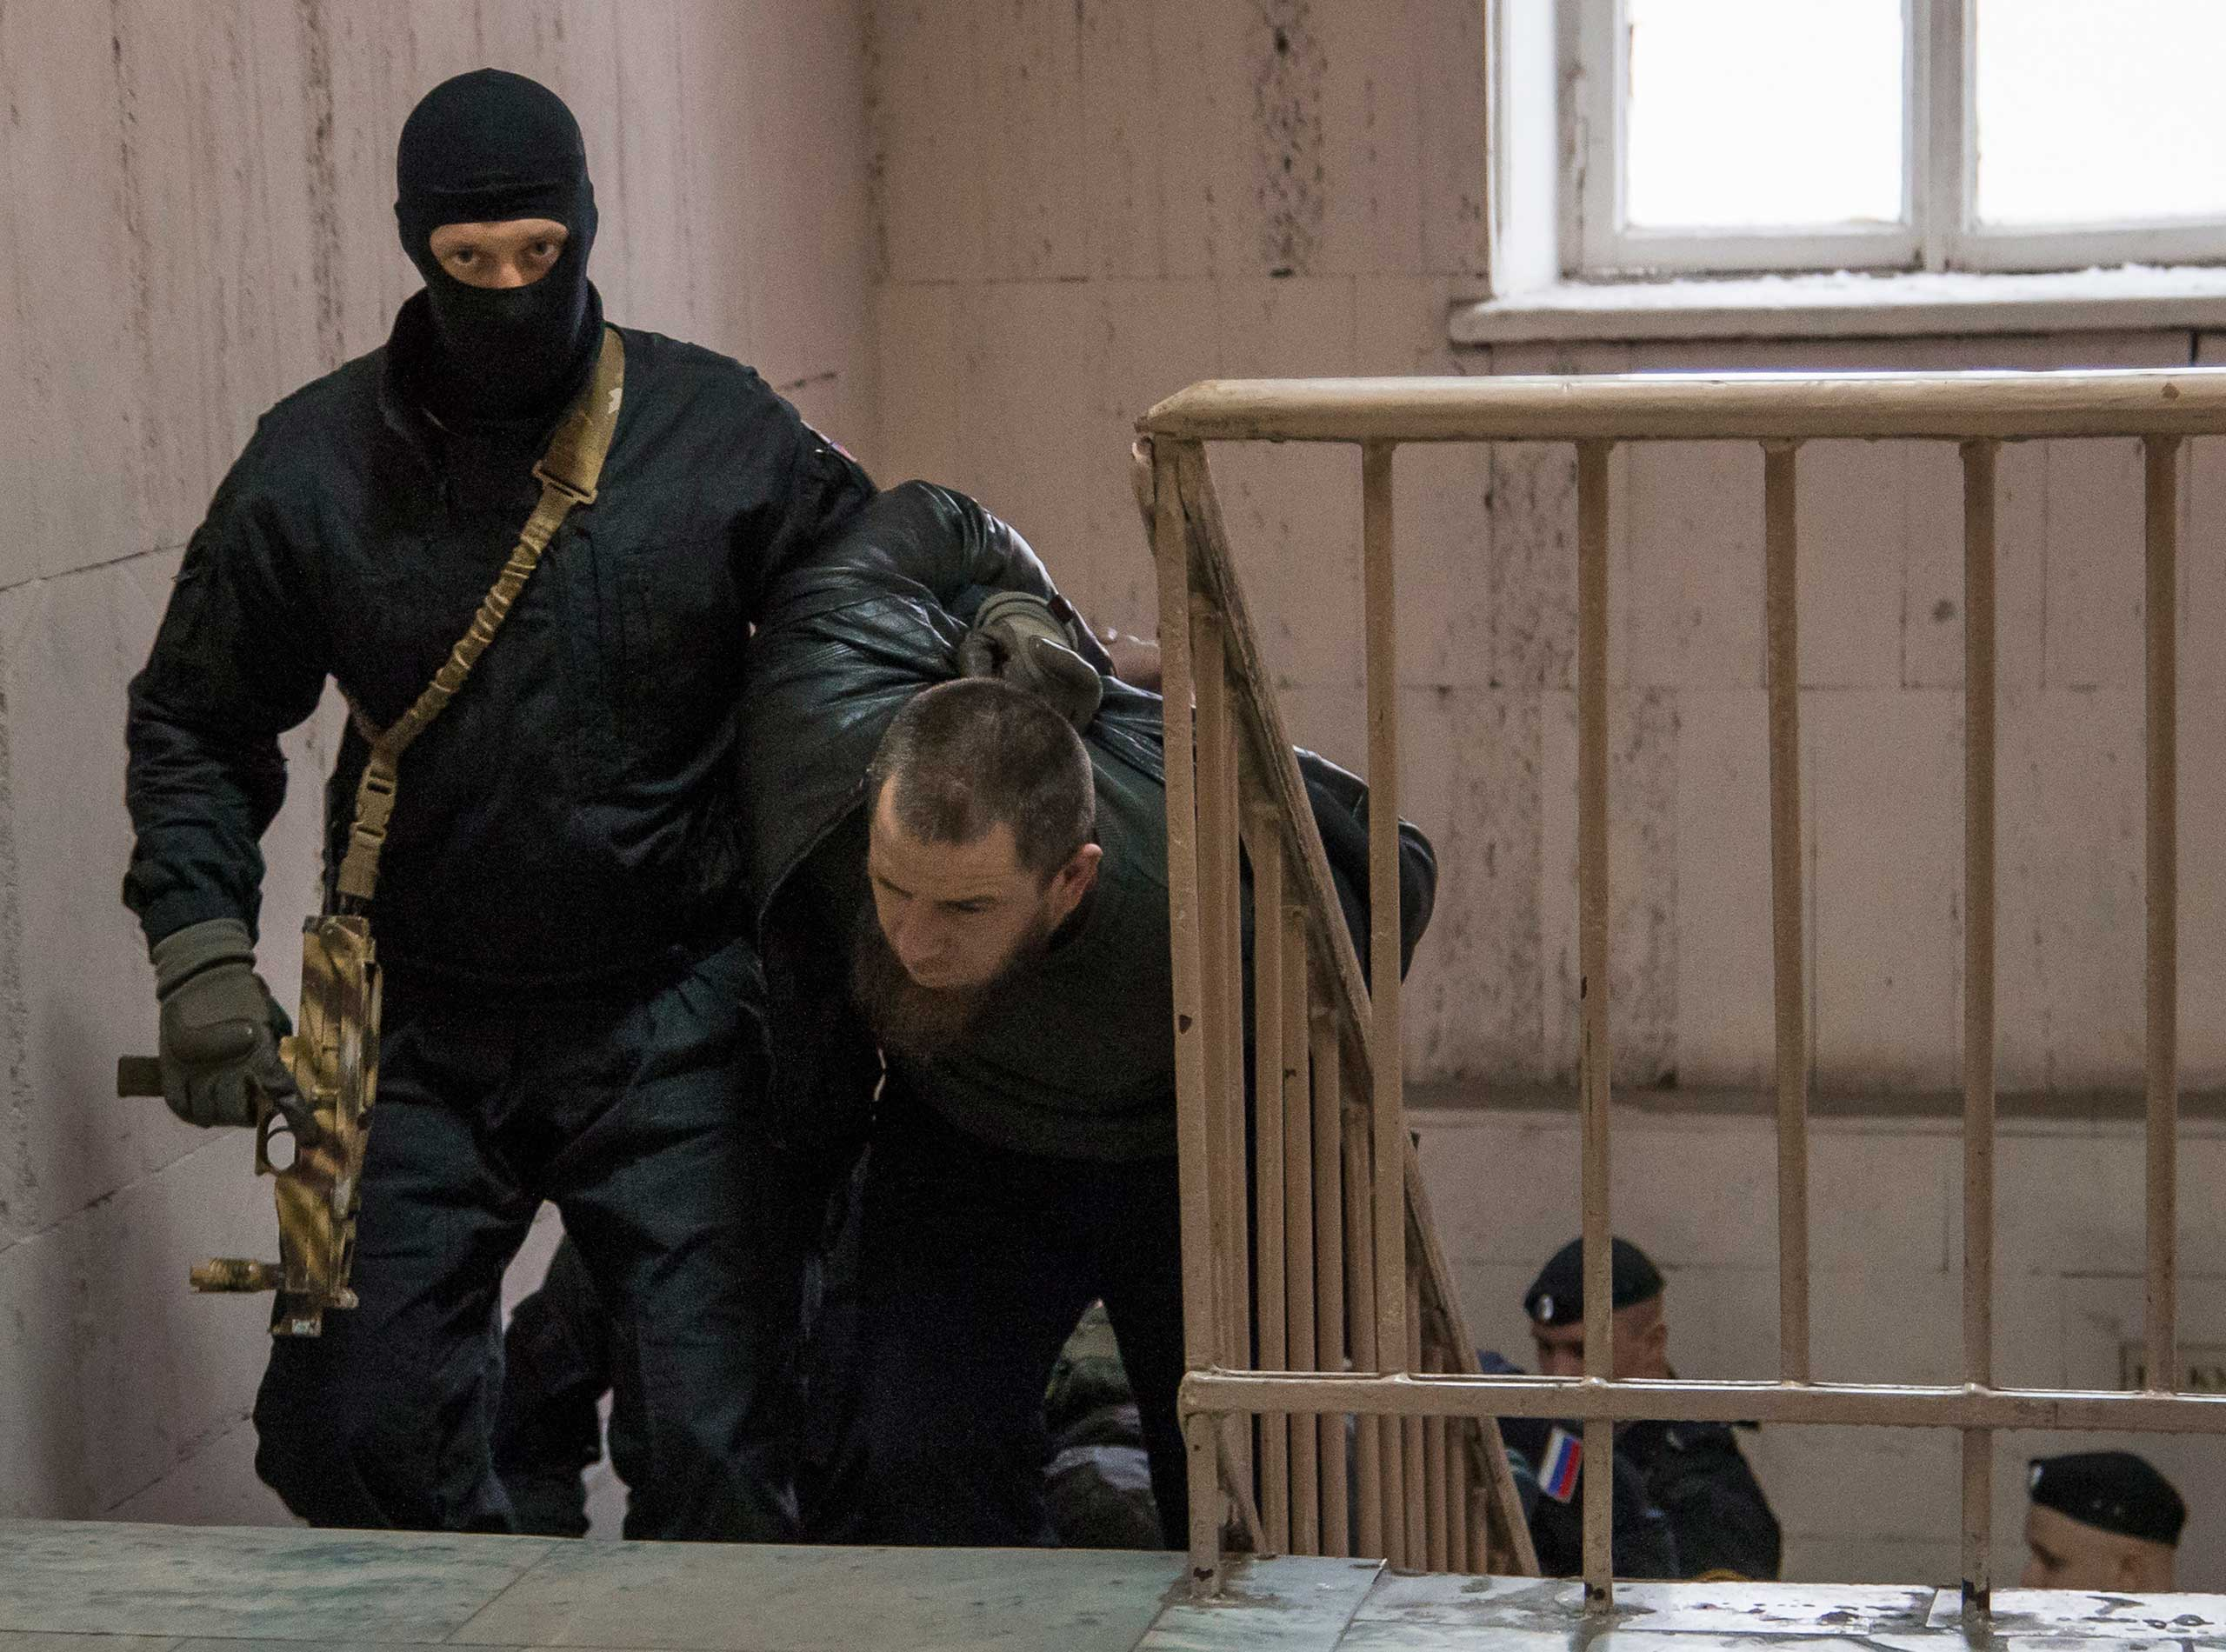 Police escort Tamerlan Eskerkhanov believed to be one of five suspects in the killing of Boris Nemtsov in a court room in Moscow on March 8, 2015